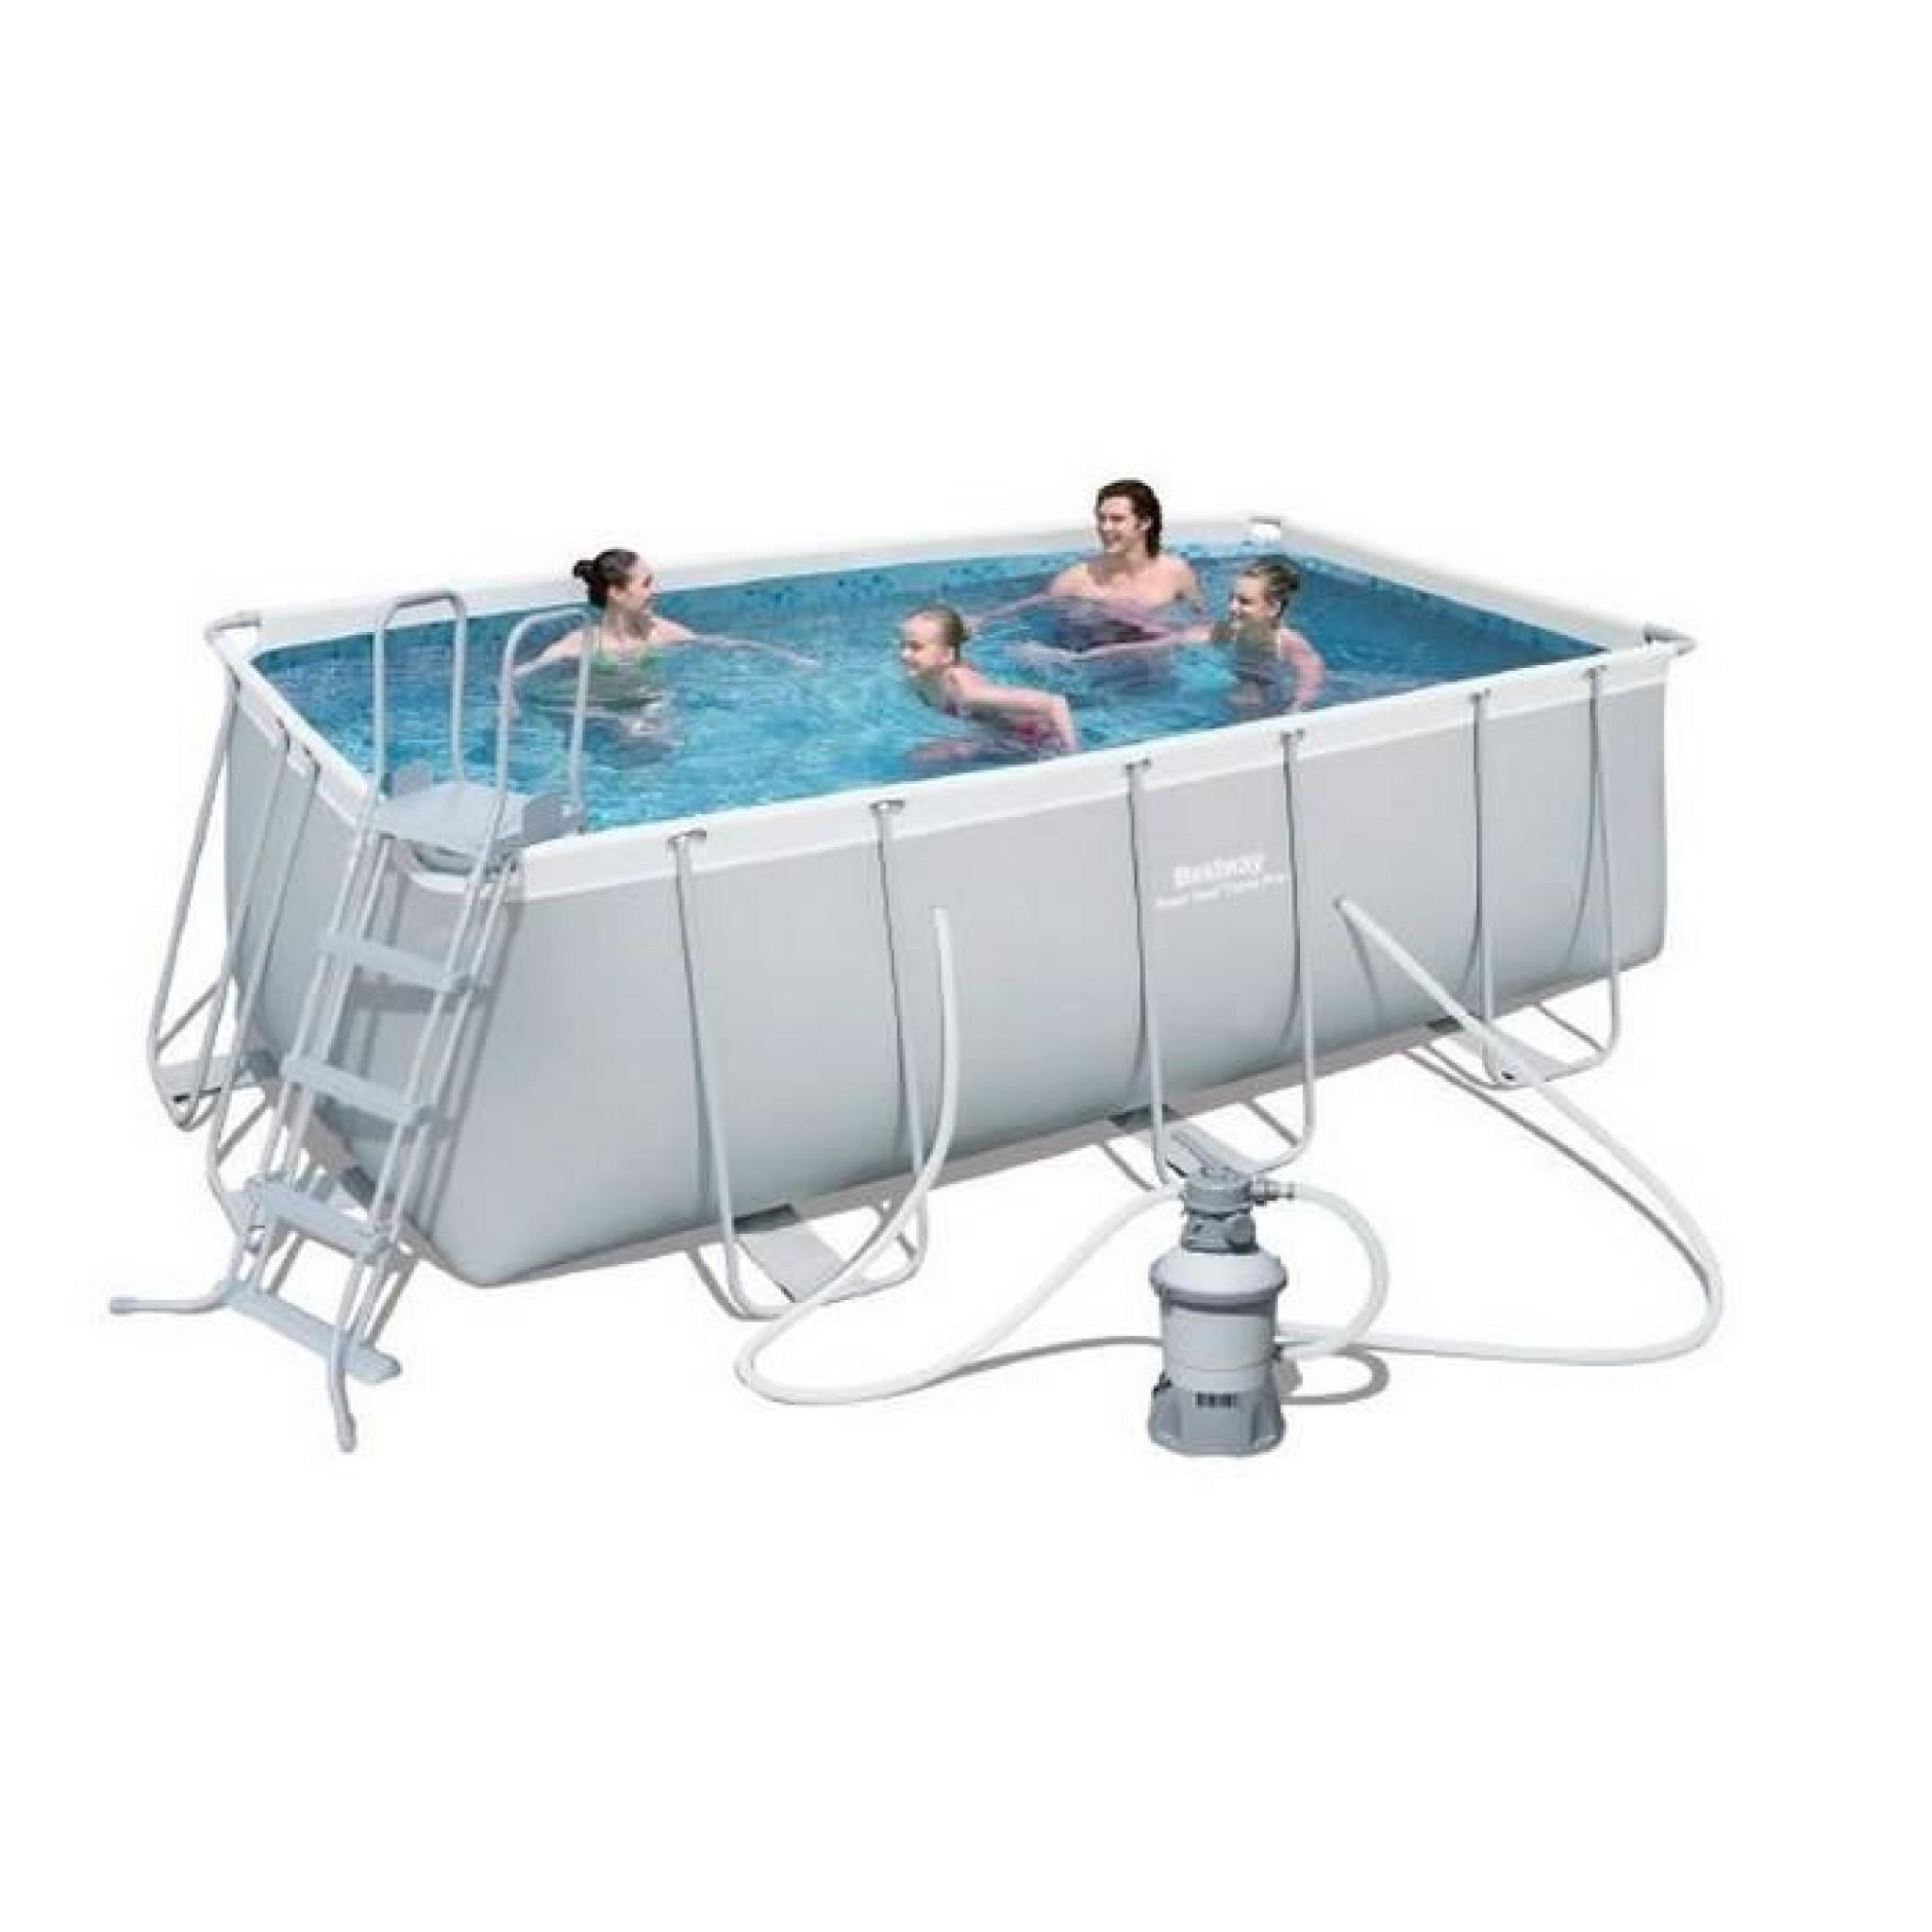 Bestway piscine tubulaire rectangulaire for Piscine hors sol tubulaire amazon